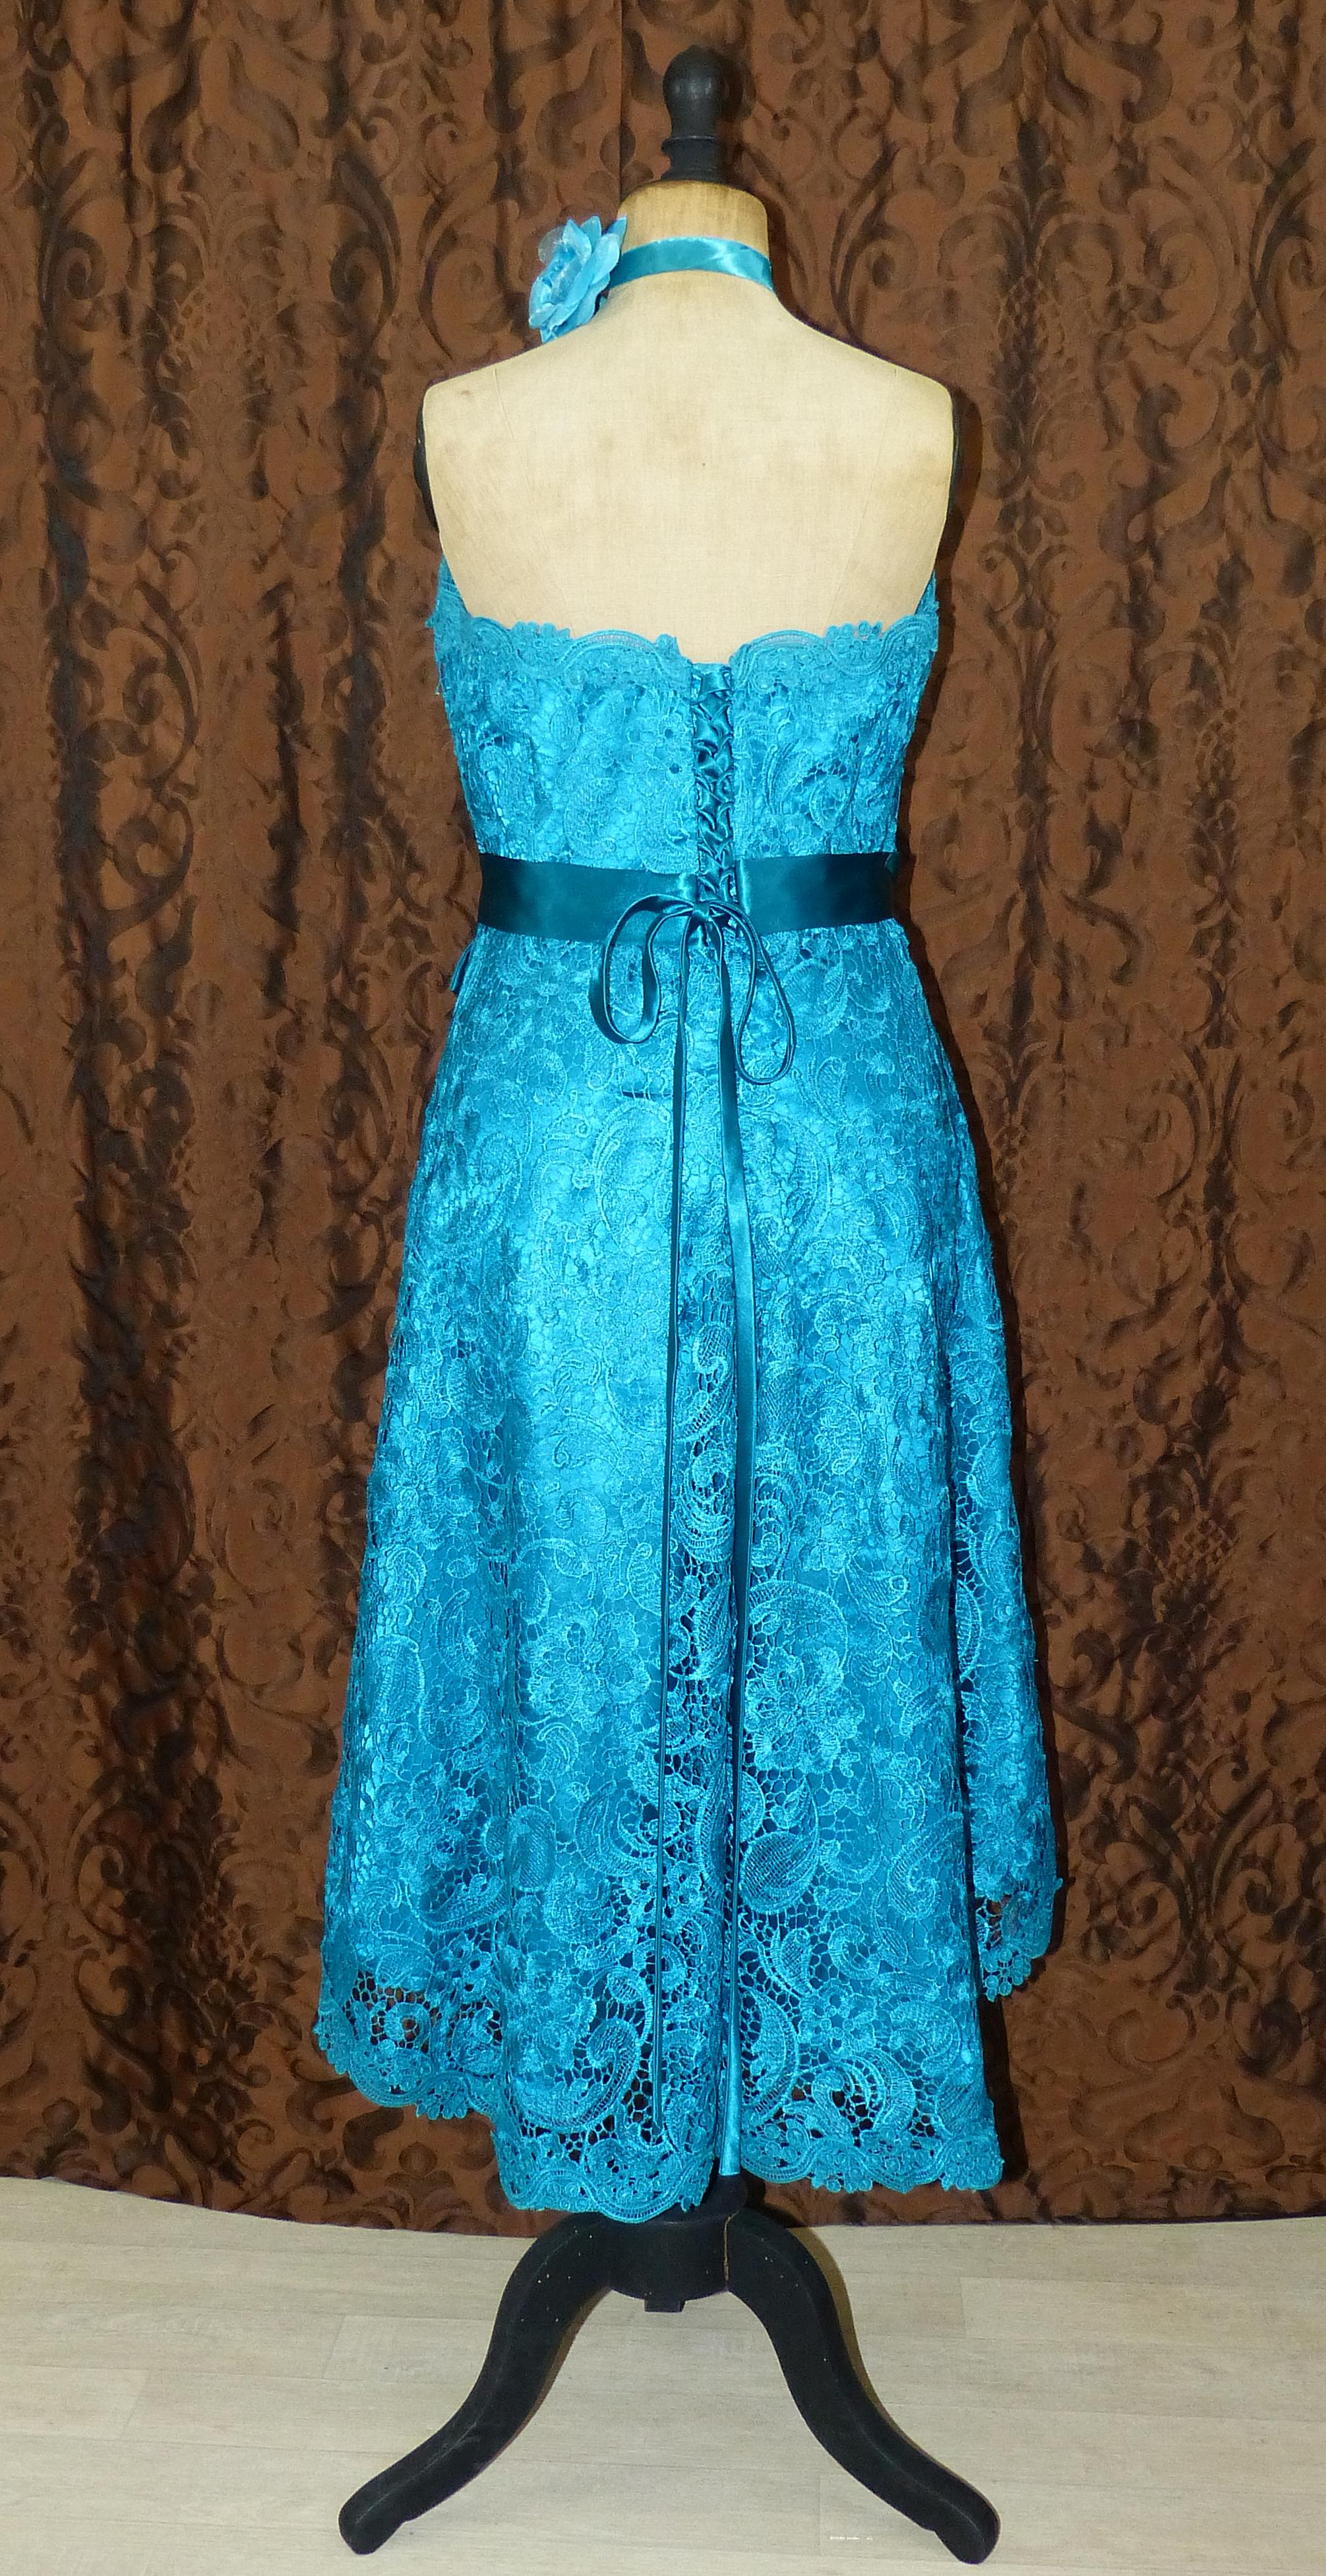 ac6d4b26e86 location robe grande taille ophelie 02. Location de robe grande taille ...